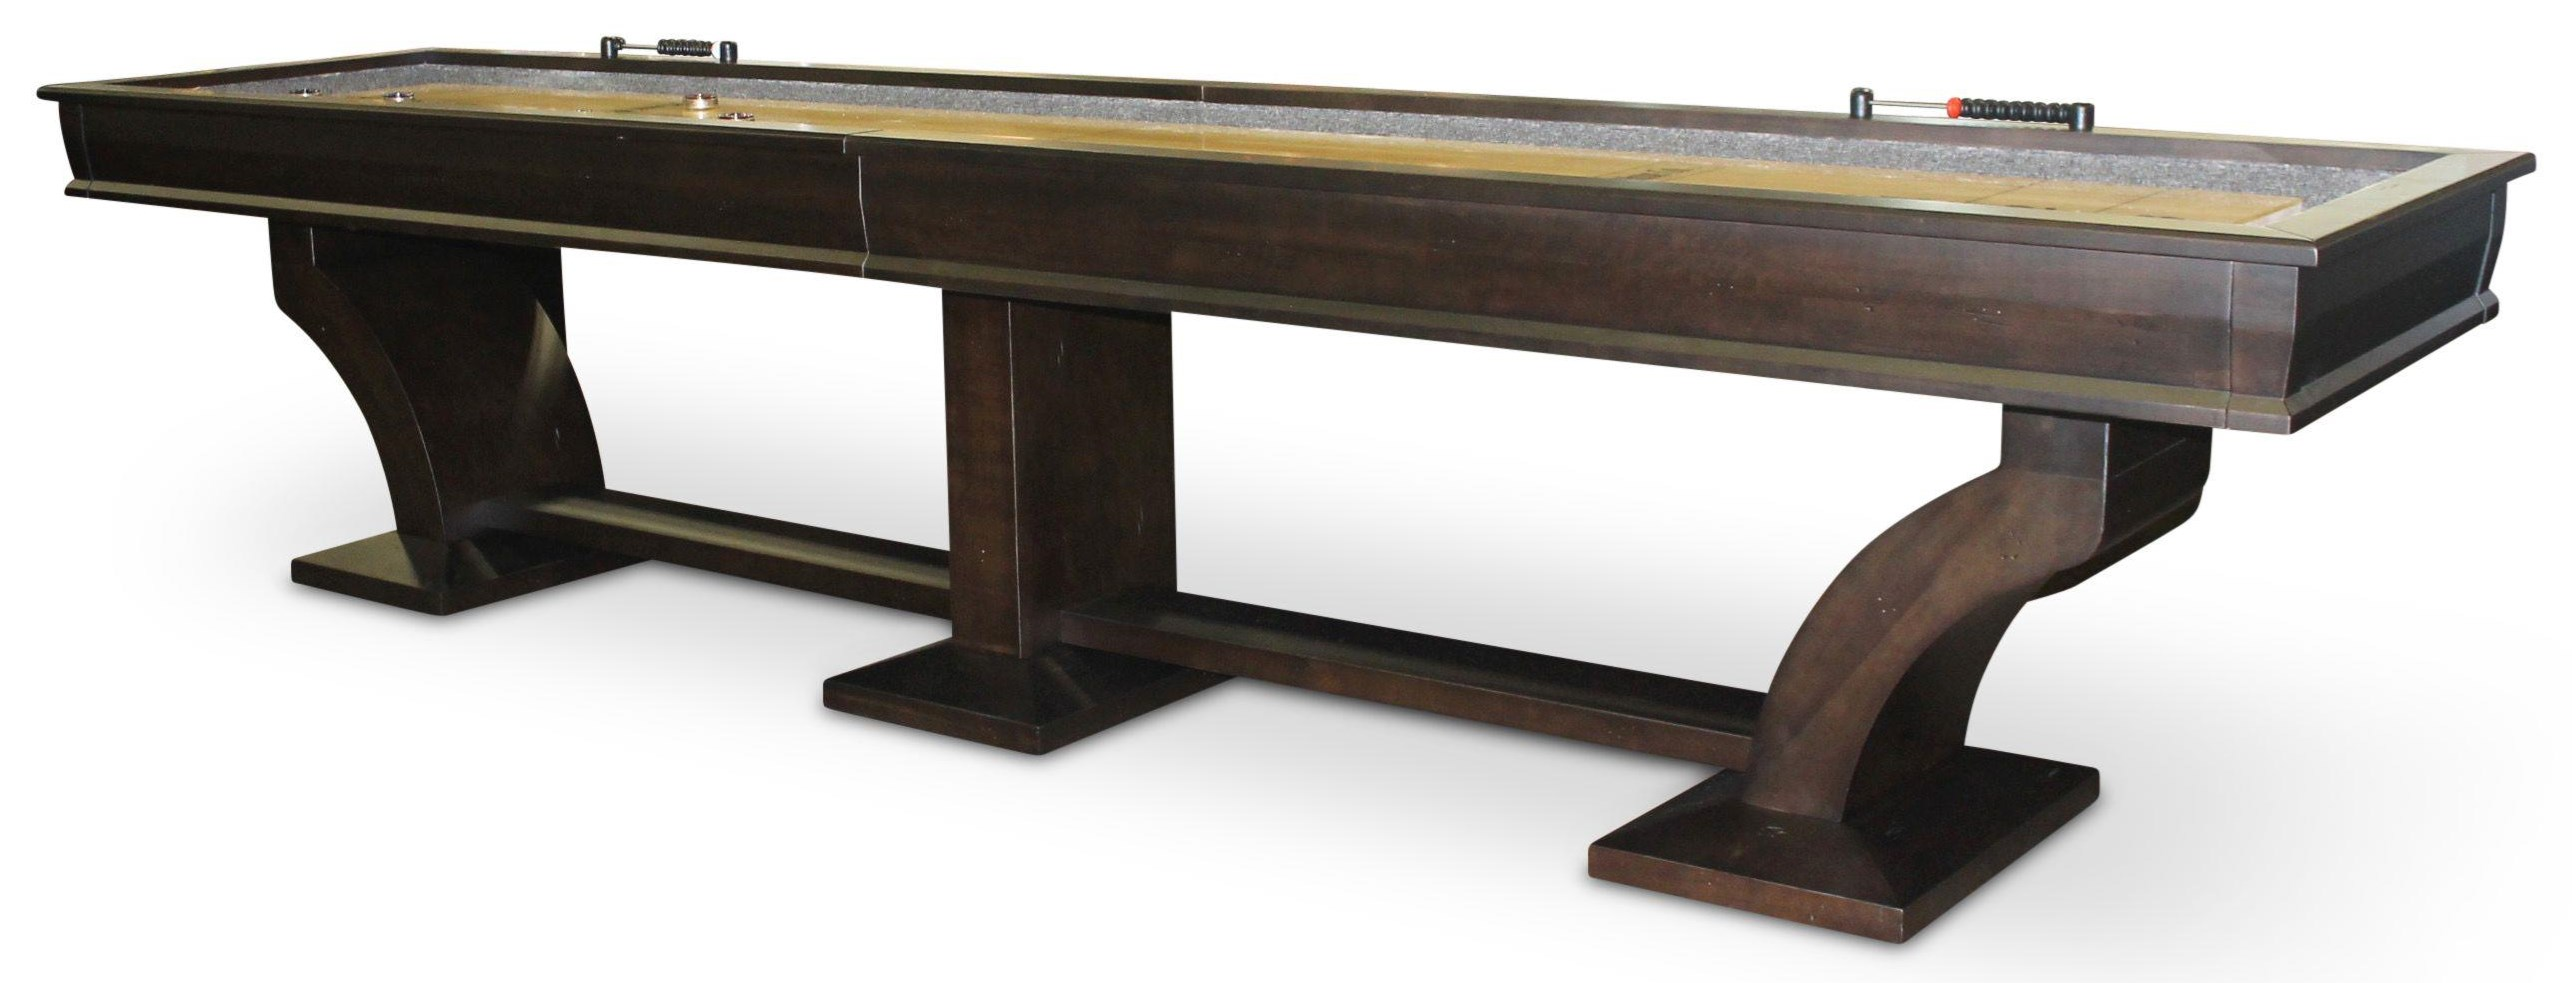 Paxton 14' Shuffleboard by Plank & Hide at Johnny Janosik